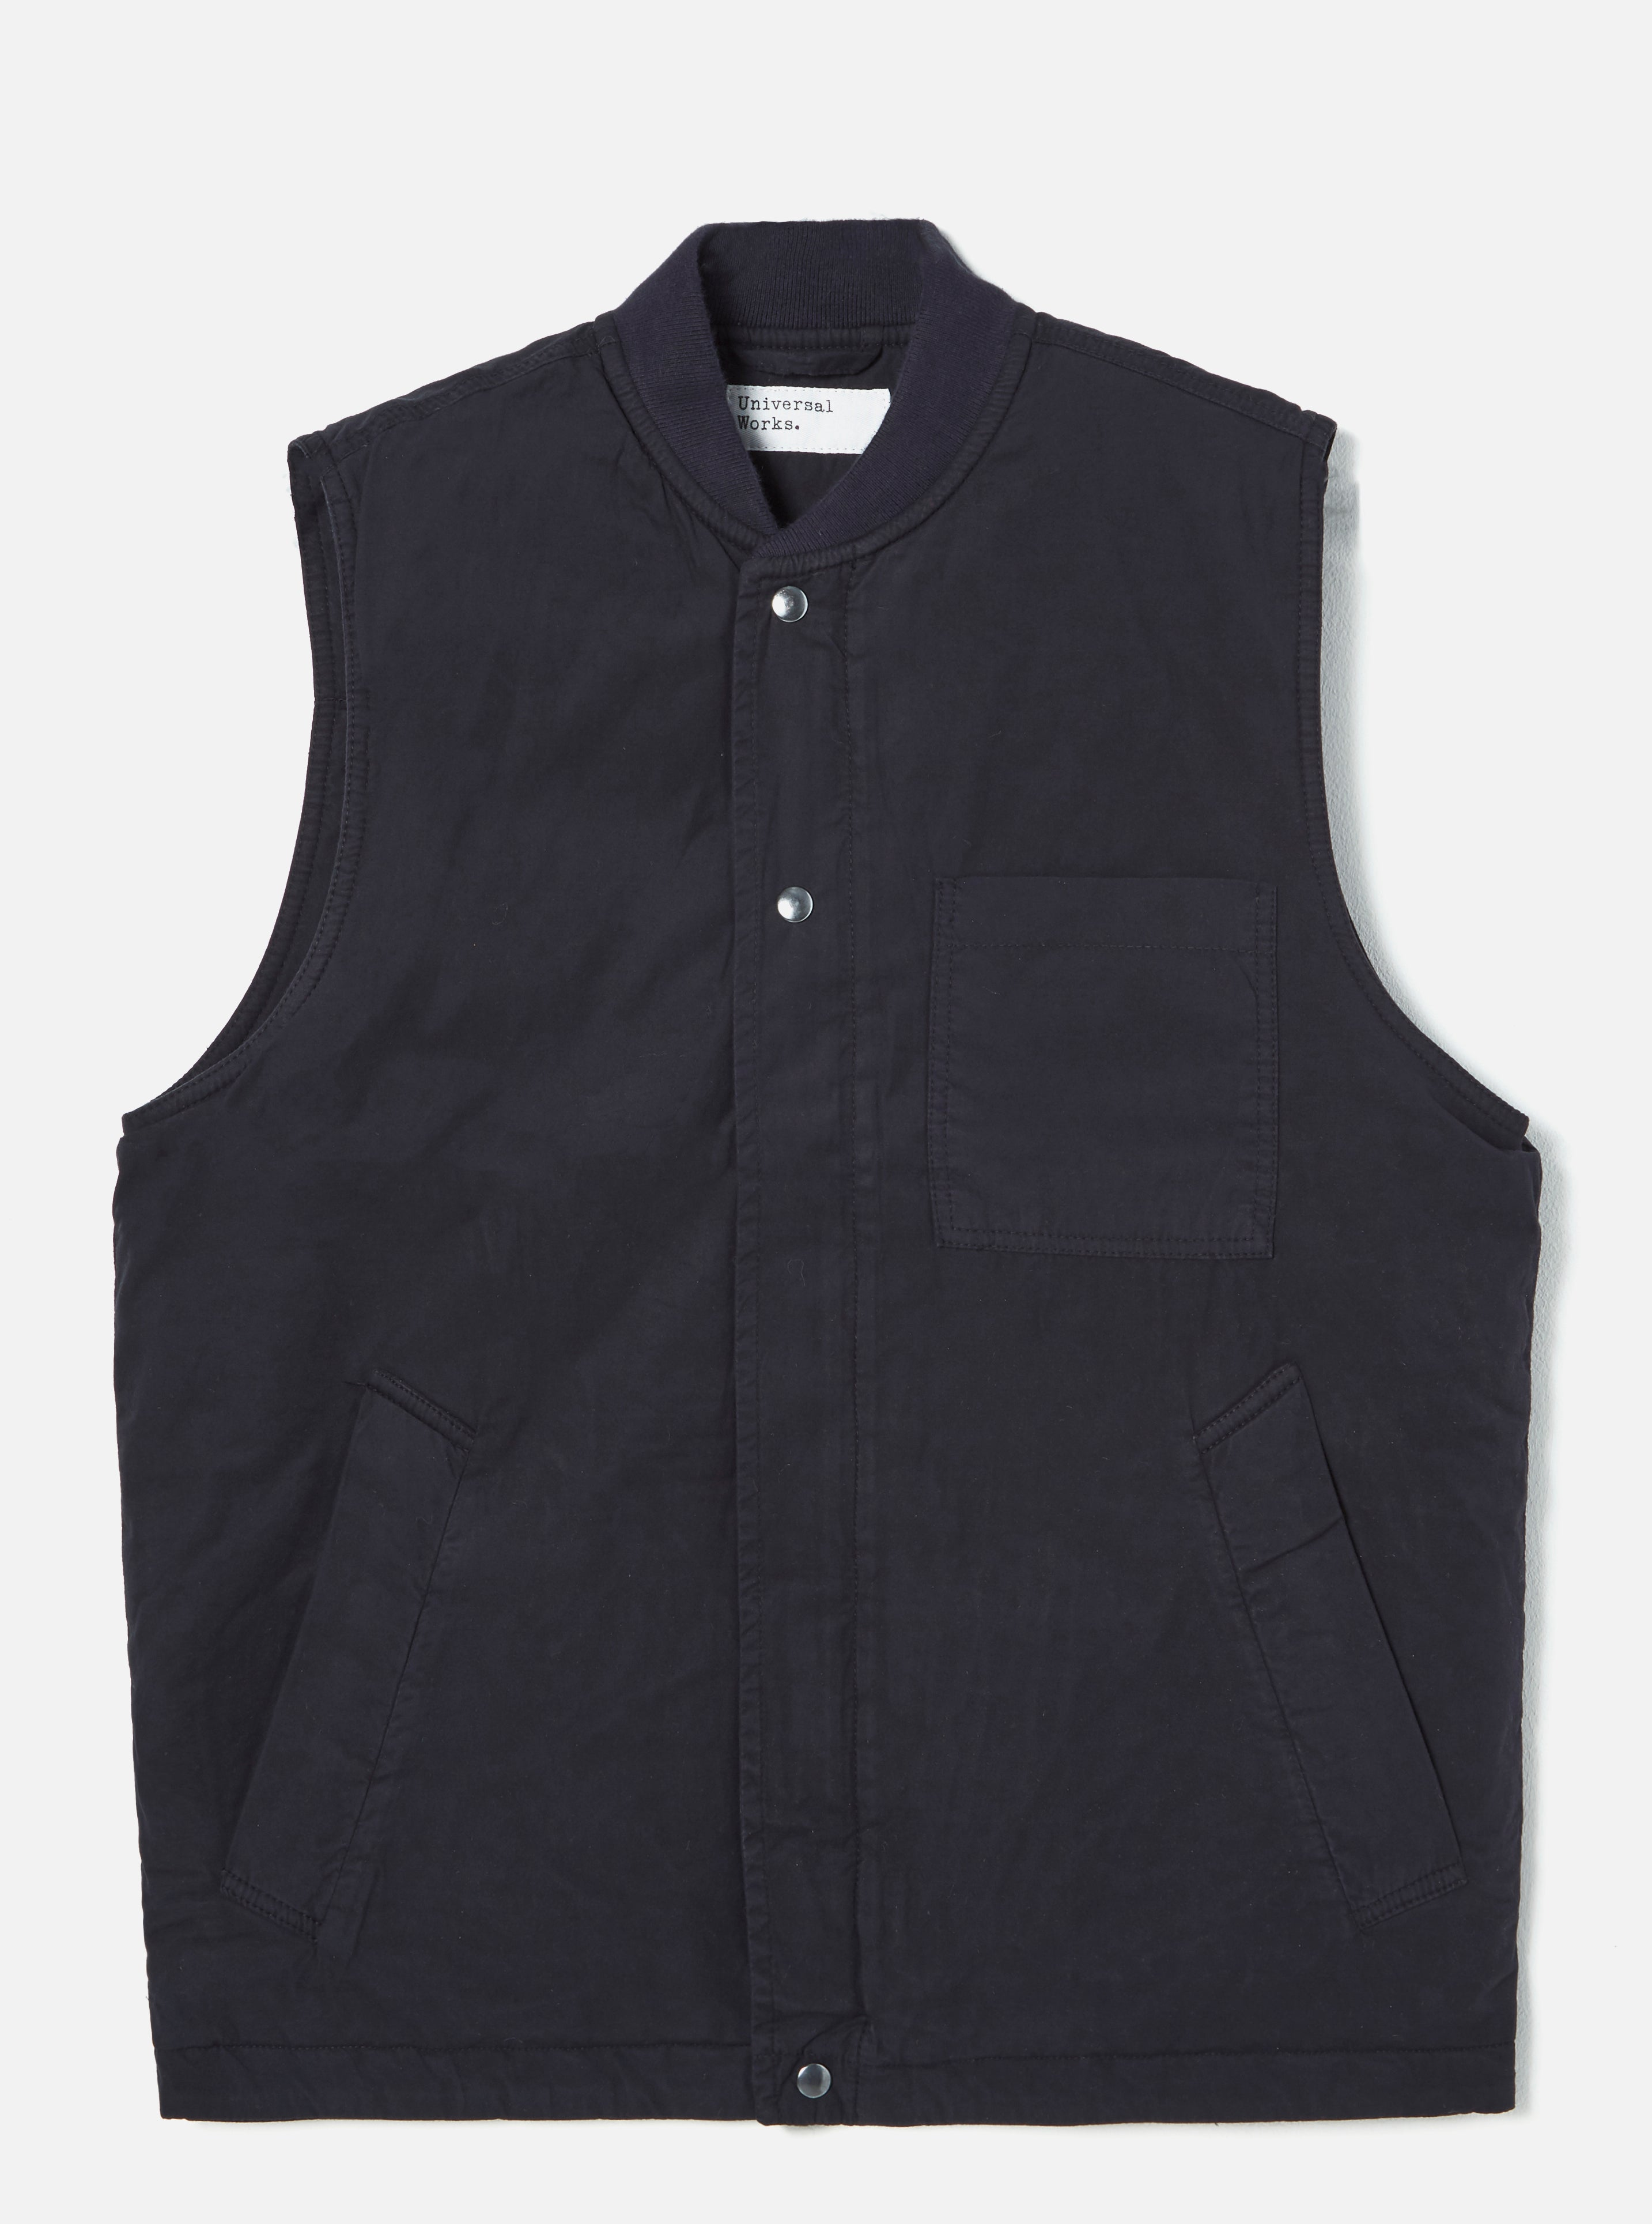 Universal Works Carlton Gilet in Midnight Quilt Insulated Cotton